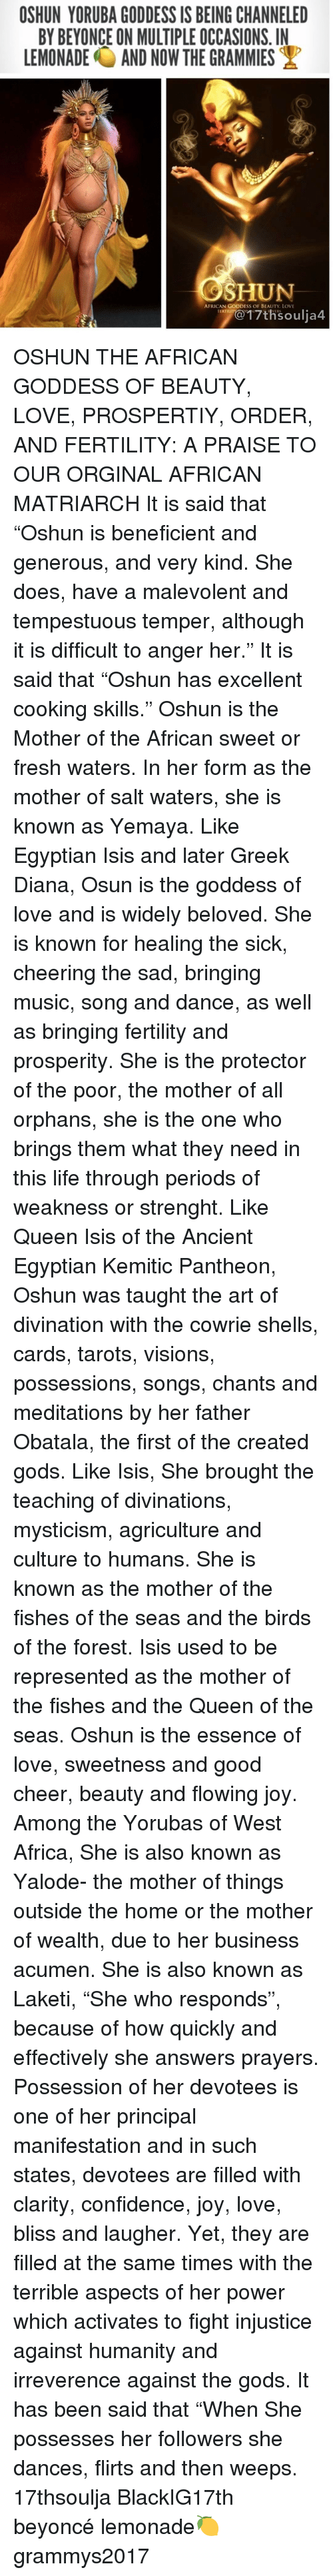 """Memes, Beneficial, and Huns: OSHUN YORUBA GODDESS IS BEING CHANNELED  BY BEYONCE ON MULTIPLE OCCASIONS. IN  LEMONADE AND NOW THE GRAMMIES  HUN  AFRICAN GODDESS OF BEAUTY. LOVE  17th Soulia4 OSHUN THE AFRICAN GODDESS OF BEAUTY, LOVE, PROSPERTIY, ORDER, AND FERTILITY: A PRAISE TO OUR ORGINAL AFRICAN MATRIARCH It is said that """"Oshun is beneficient and generous, and very kind. She does, have a malevolent and tempestuous temper, although it is difficult to anger her."""" It is said that """"Oshun has excellent cooking skills."""" Oshun is the Mother of the African sweet or fresh waters. In her form as the mother of salt waters, she is known as Yemaya. Like Egyptian Isis and later Greek Diana, Osun is the goddess of love and is widely beloved. She is known for healing the sick, cheering the sad, bringing music, song and dance, as well as bringing fertility and prosperity. She is the protector of the poor, the mother of all orphans, she is the one who brings them what they need in this life through periods of weakness or strenght. Like Queen Isis of the Ancient Egyptian Kemitic Pantheon, Oshun was taught the art of divination with the cowrie shells, cards, tarots, visions, possessions, songs, chants and meditations by her father Obatala, the first of the created gods. Like Isis, She brought the teaching of divinations, mysticism, agriculture and culture to humans. She is known as the mother of the fishes of the seas and the birds of the forest. Isis used to be represented as the mother of the fishes and the Queen of the seas. Oshun is the essence of love, sweetness and good cheer, beauty and flowing joy. Among the Yorubas of West Africa, She is also known as Yalode- the mother of things outside the home or the mother of wealth, due to her business acumen. She is also known as Laketi, """"She who responds"""", because of how quickly and effectively she answers prayers. Possession of her devotees is one of her principal manifestation and in such states, devotees are filled with clarity, co"""